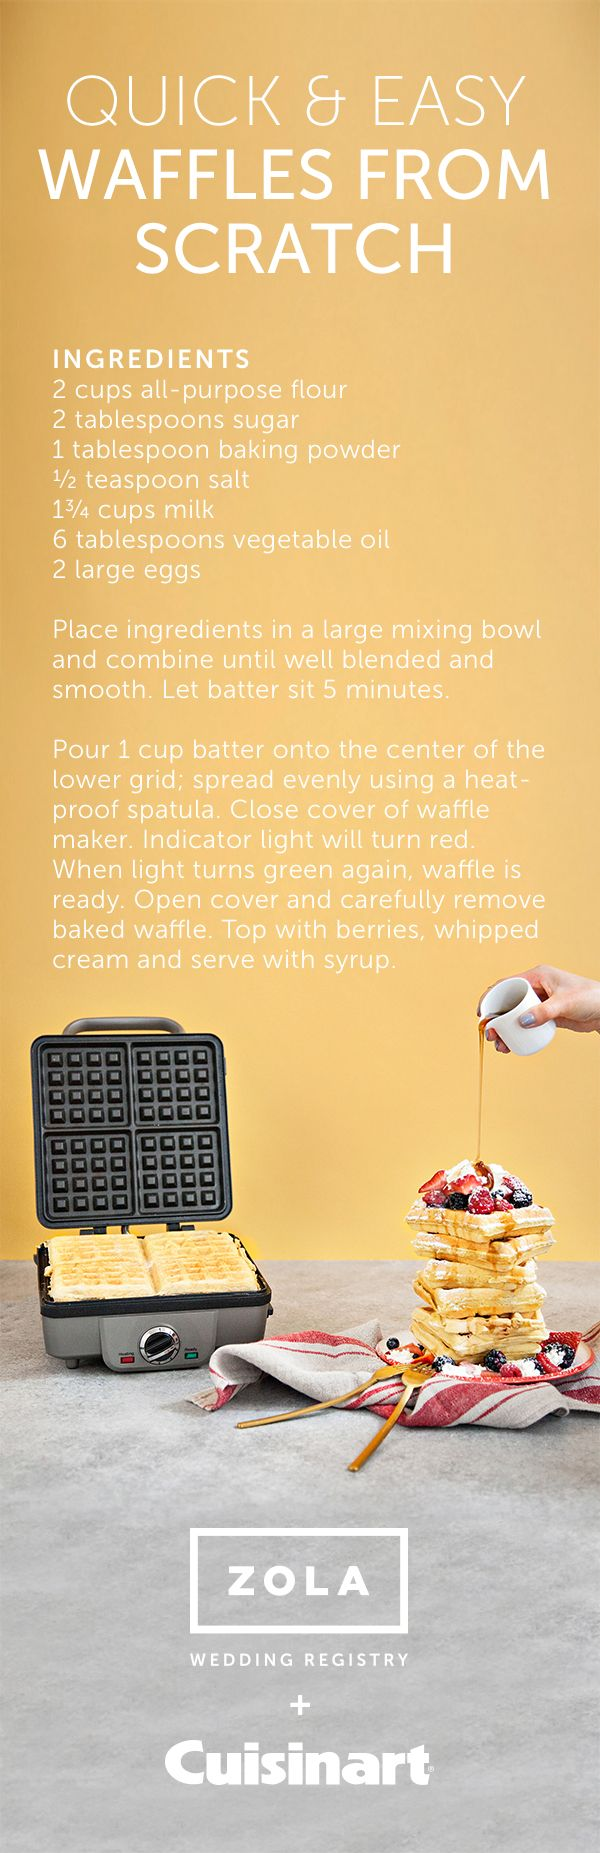 Whether you're beginners in the kitchen or seasoned chefs, this waffle recipe is perfect for you. So grab that Cuisinart waffle maker that you registered for, and let's heat things up!